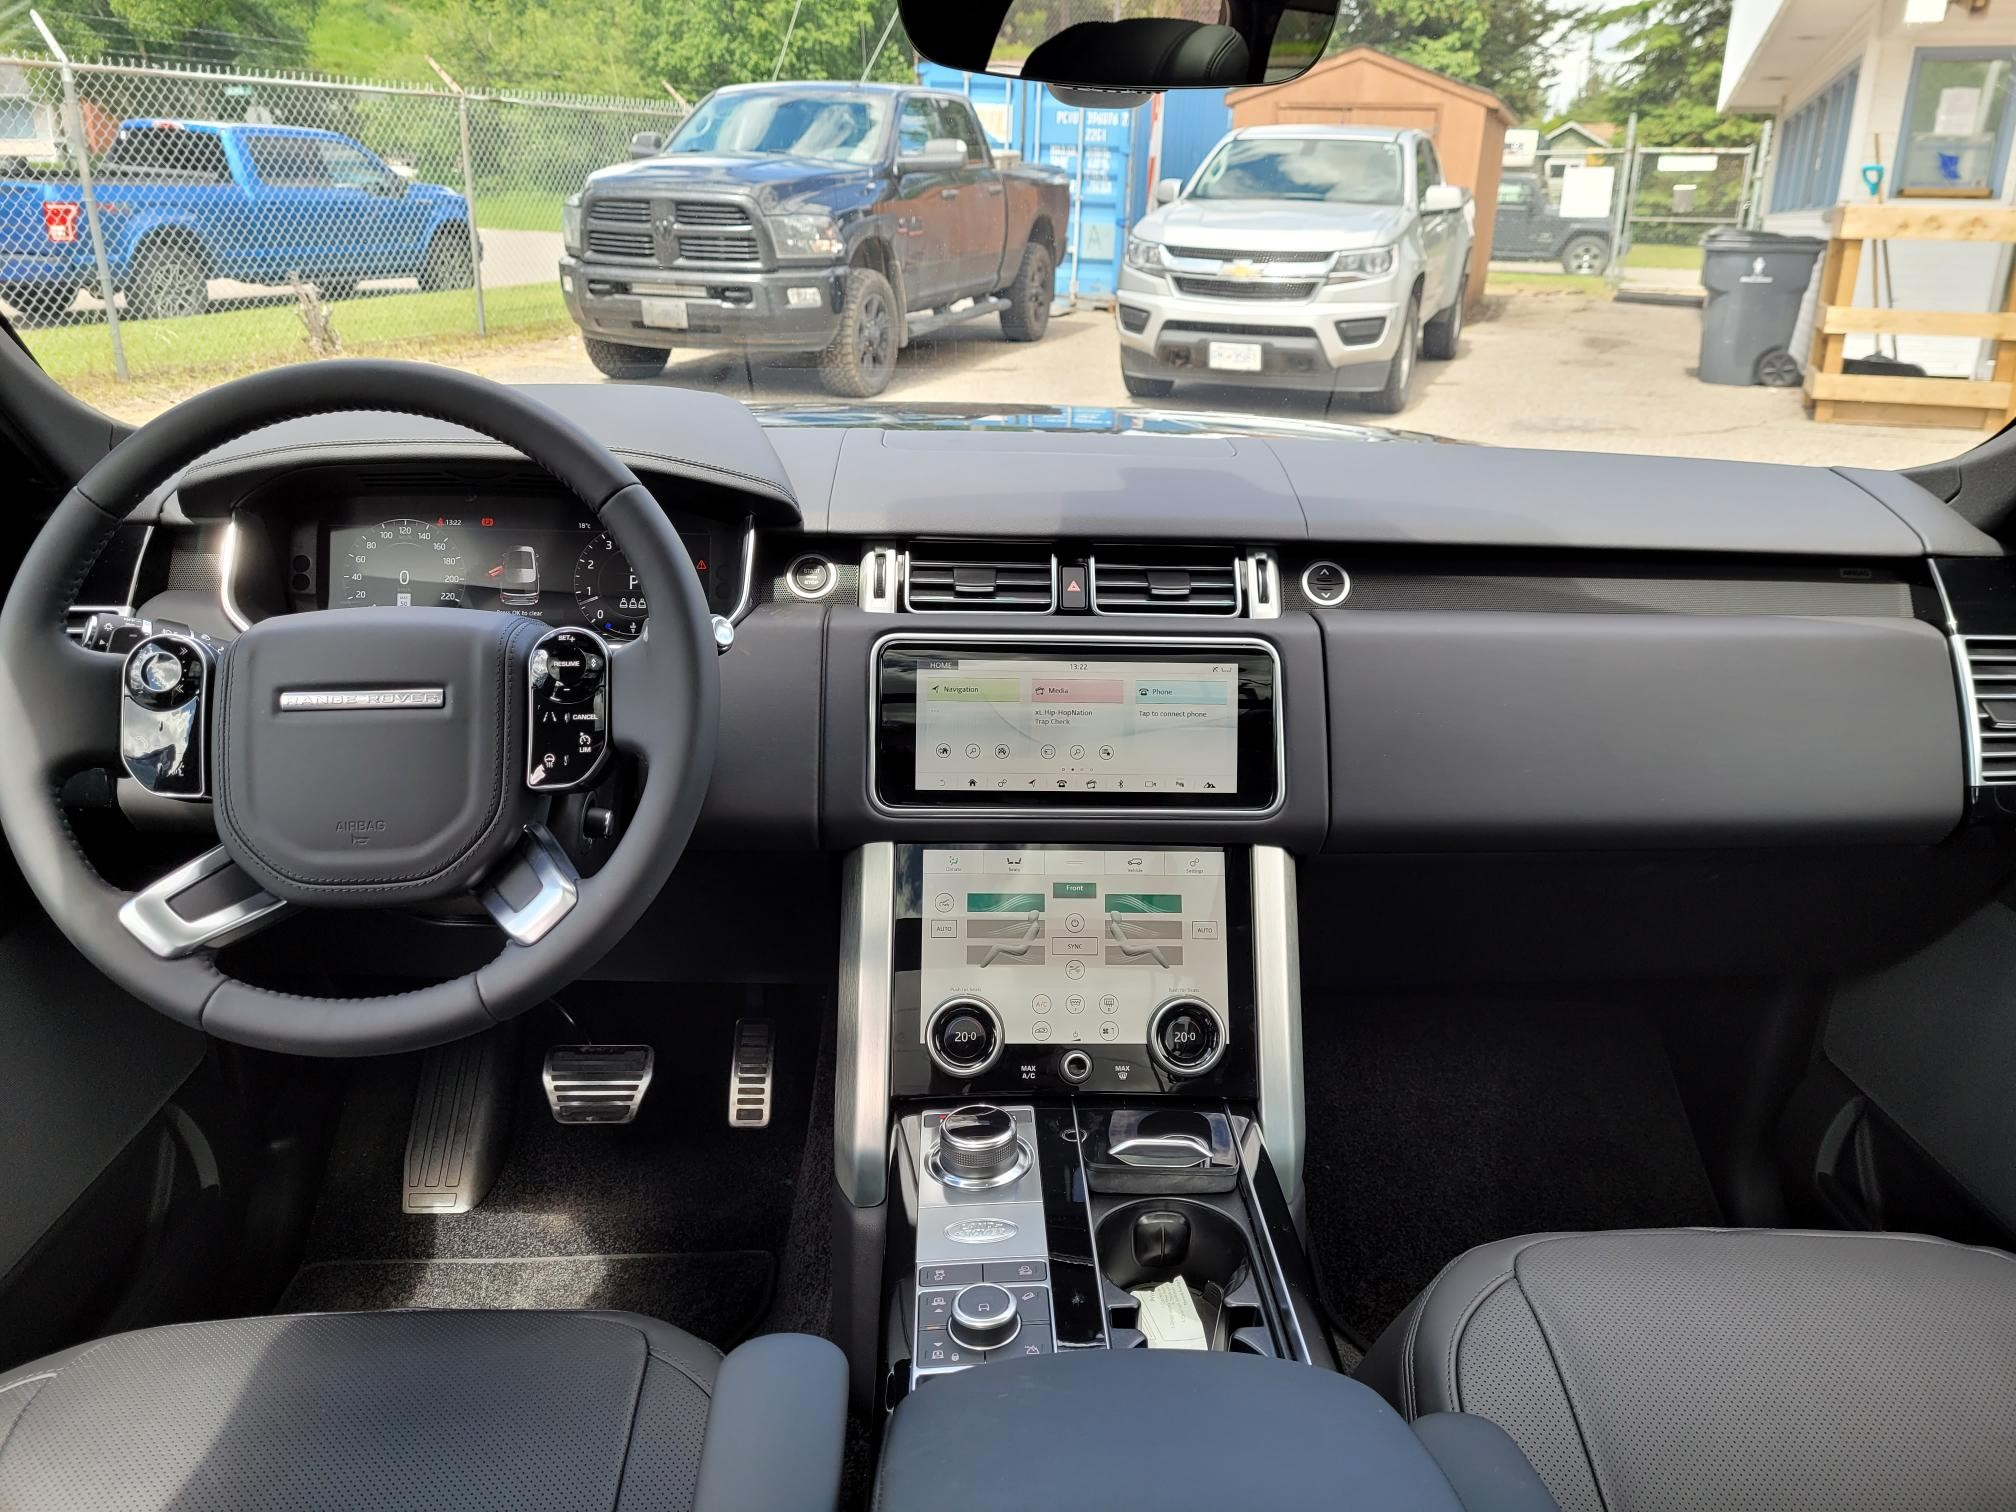 2021 Land Rover Range Rover P400 #B-PG-0467 Located in Prince George